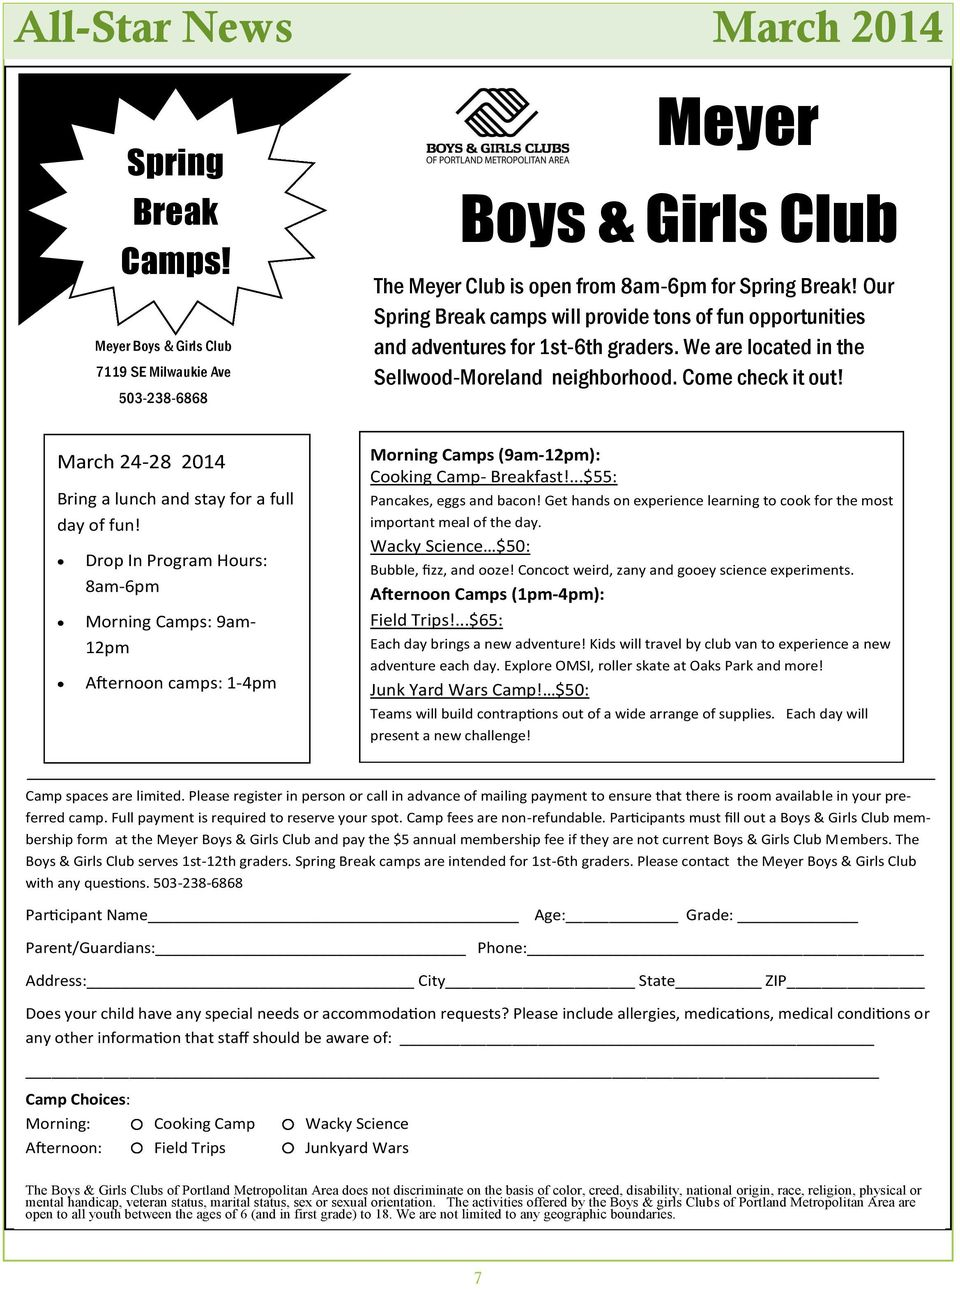 Our Spring Break camps will provide tons of fun opportunities and adventures for 1st-6th graders. We are located in the Sellwood-Moreland neighborhood. Come check it out!